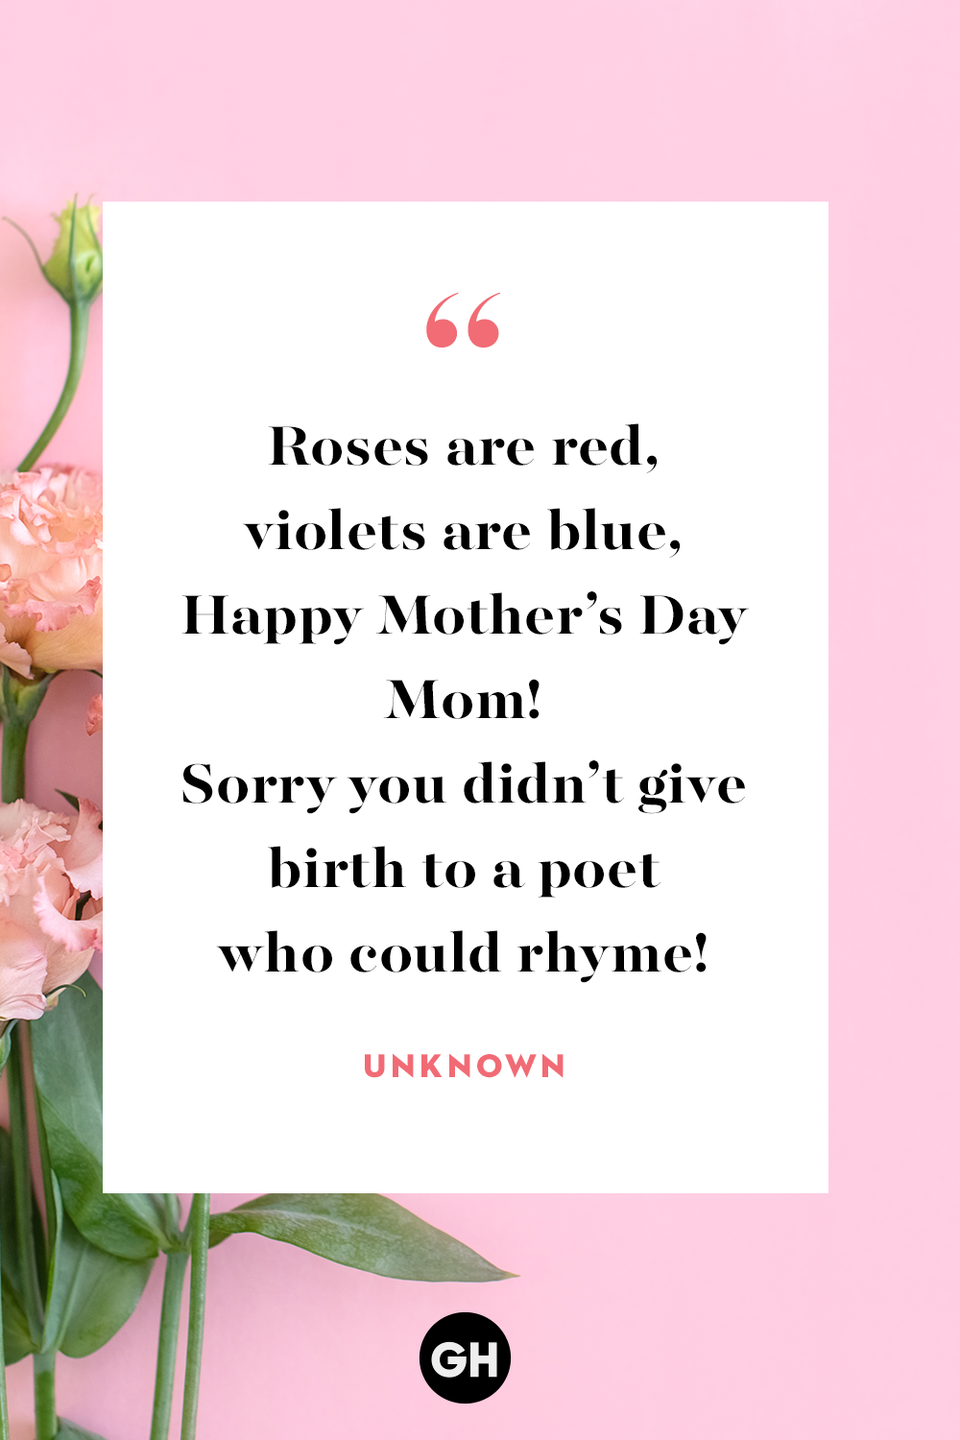 <p>Roses are red,</p><p>violets are blue.</p><p>Happy Mother's Day Mom!</p><p>Sorry you didn't give birth to a poet who could rhyme!</p>